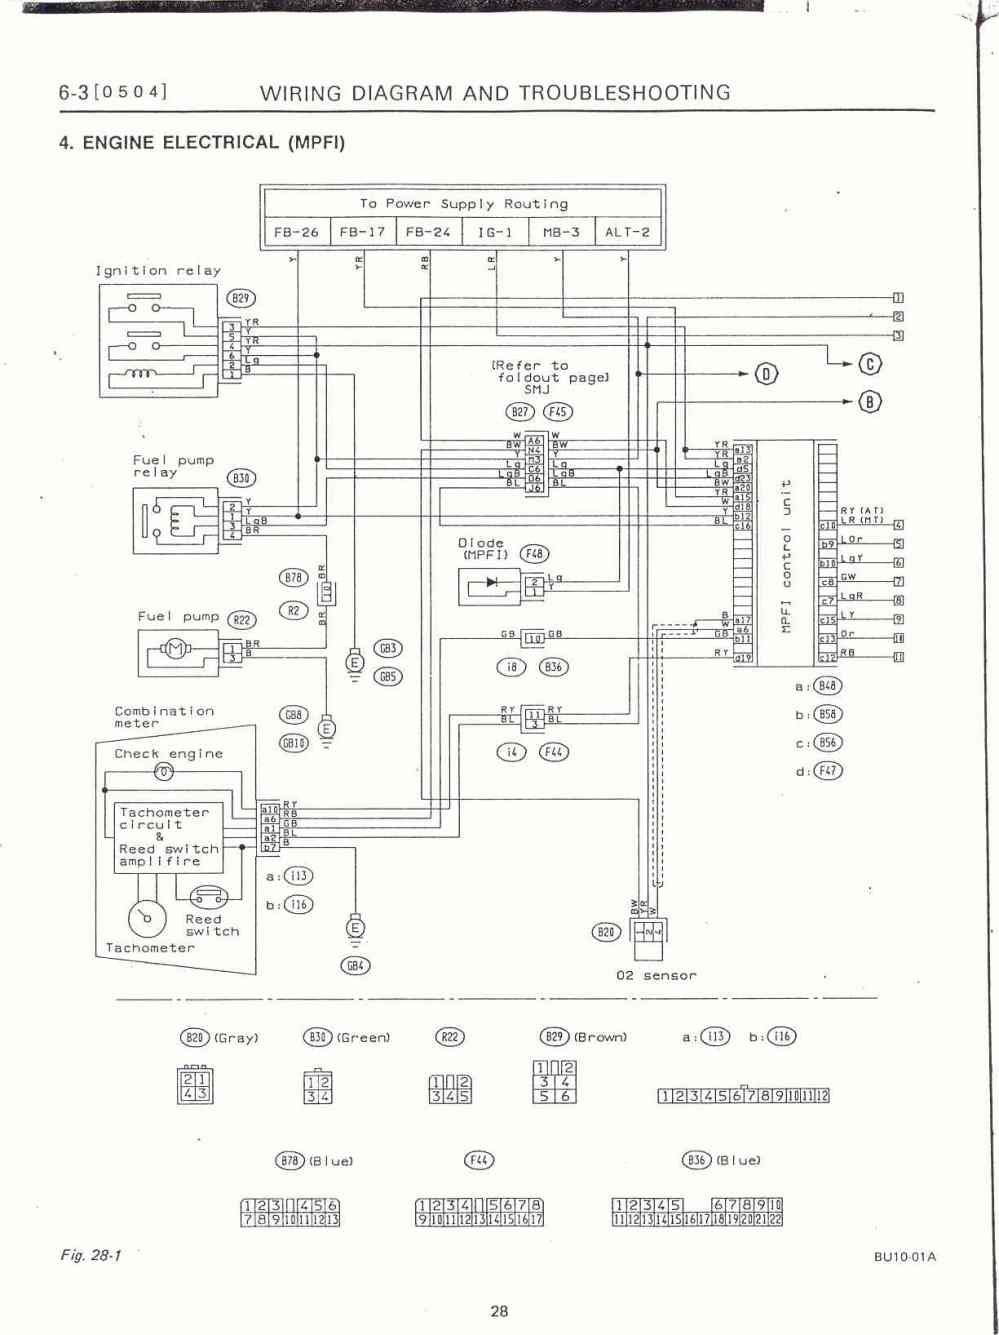 medium resolution of wiring diagrams 1991 subaru legacy wiring diagram data wiring subaru stereo wiring harness diagram 1997 subaru